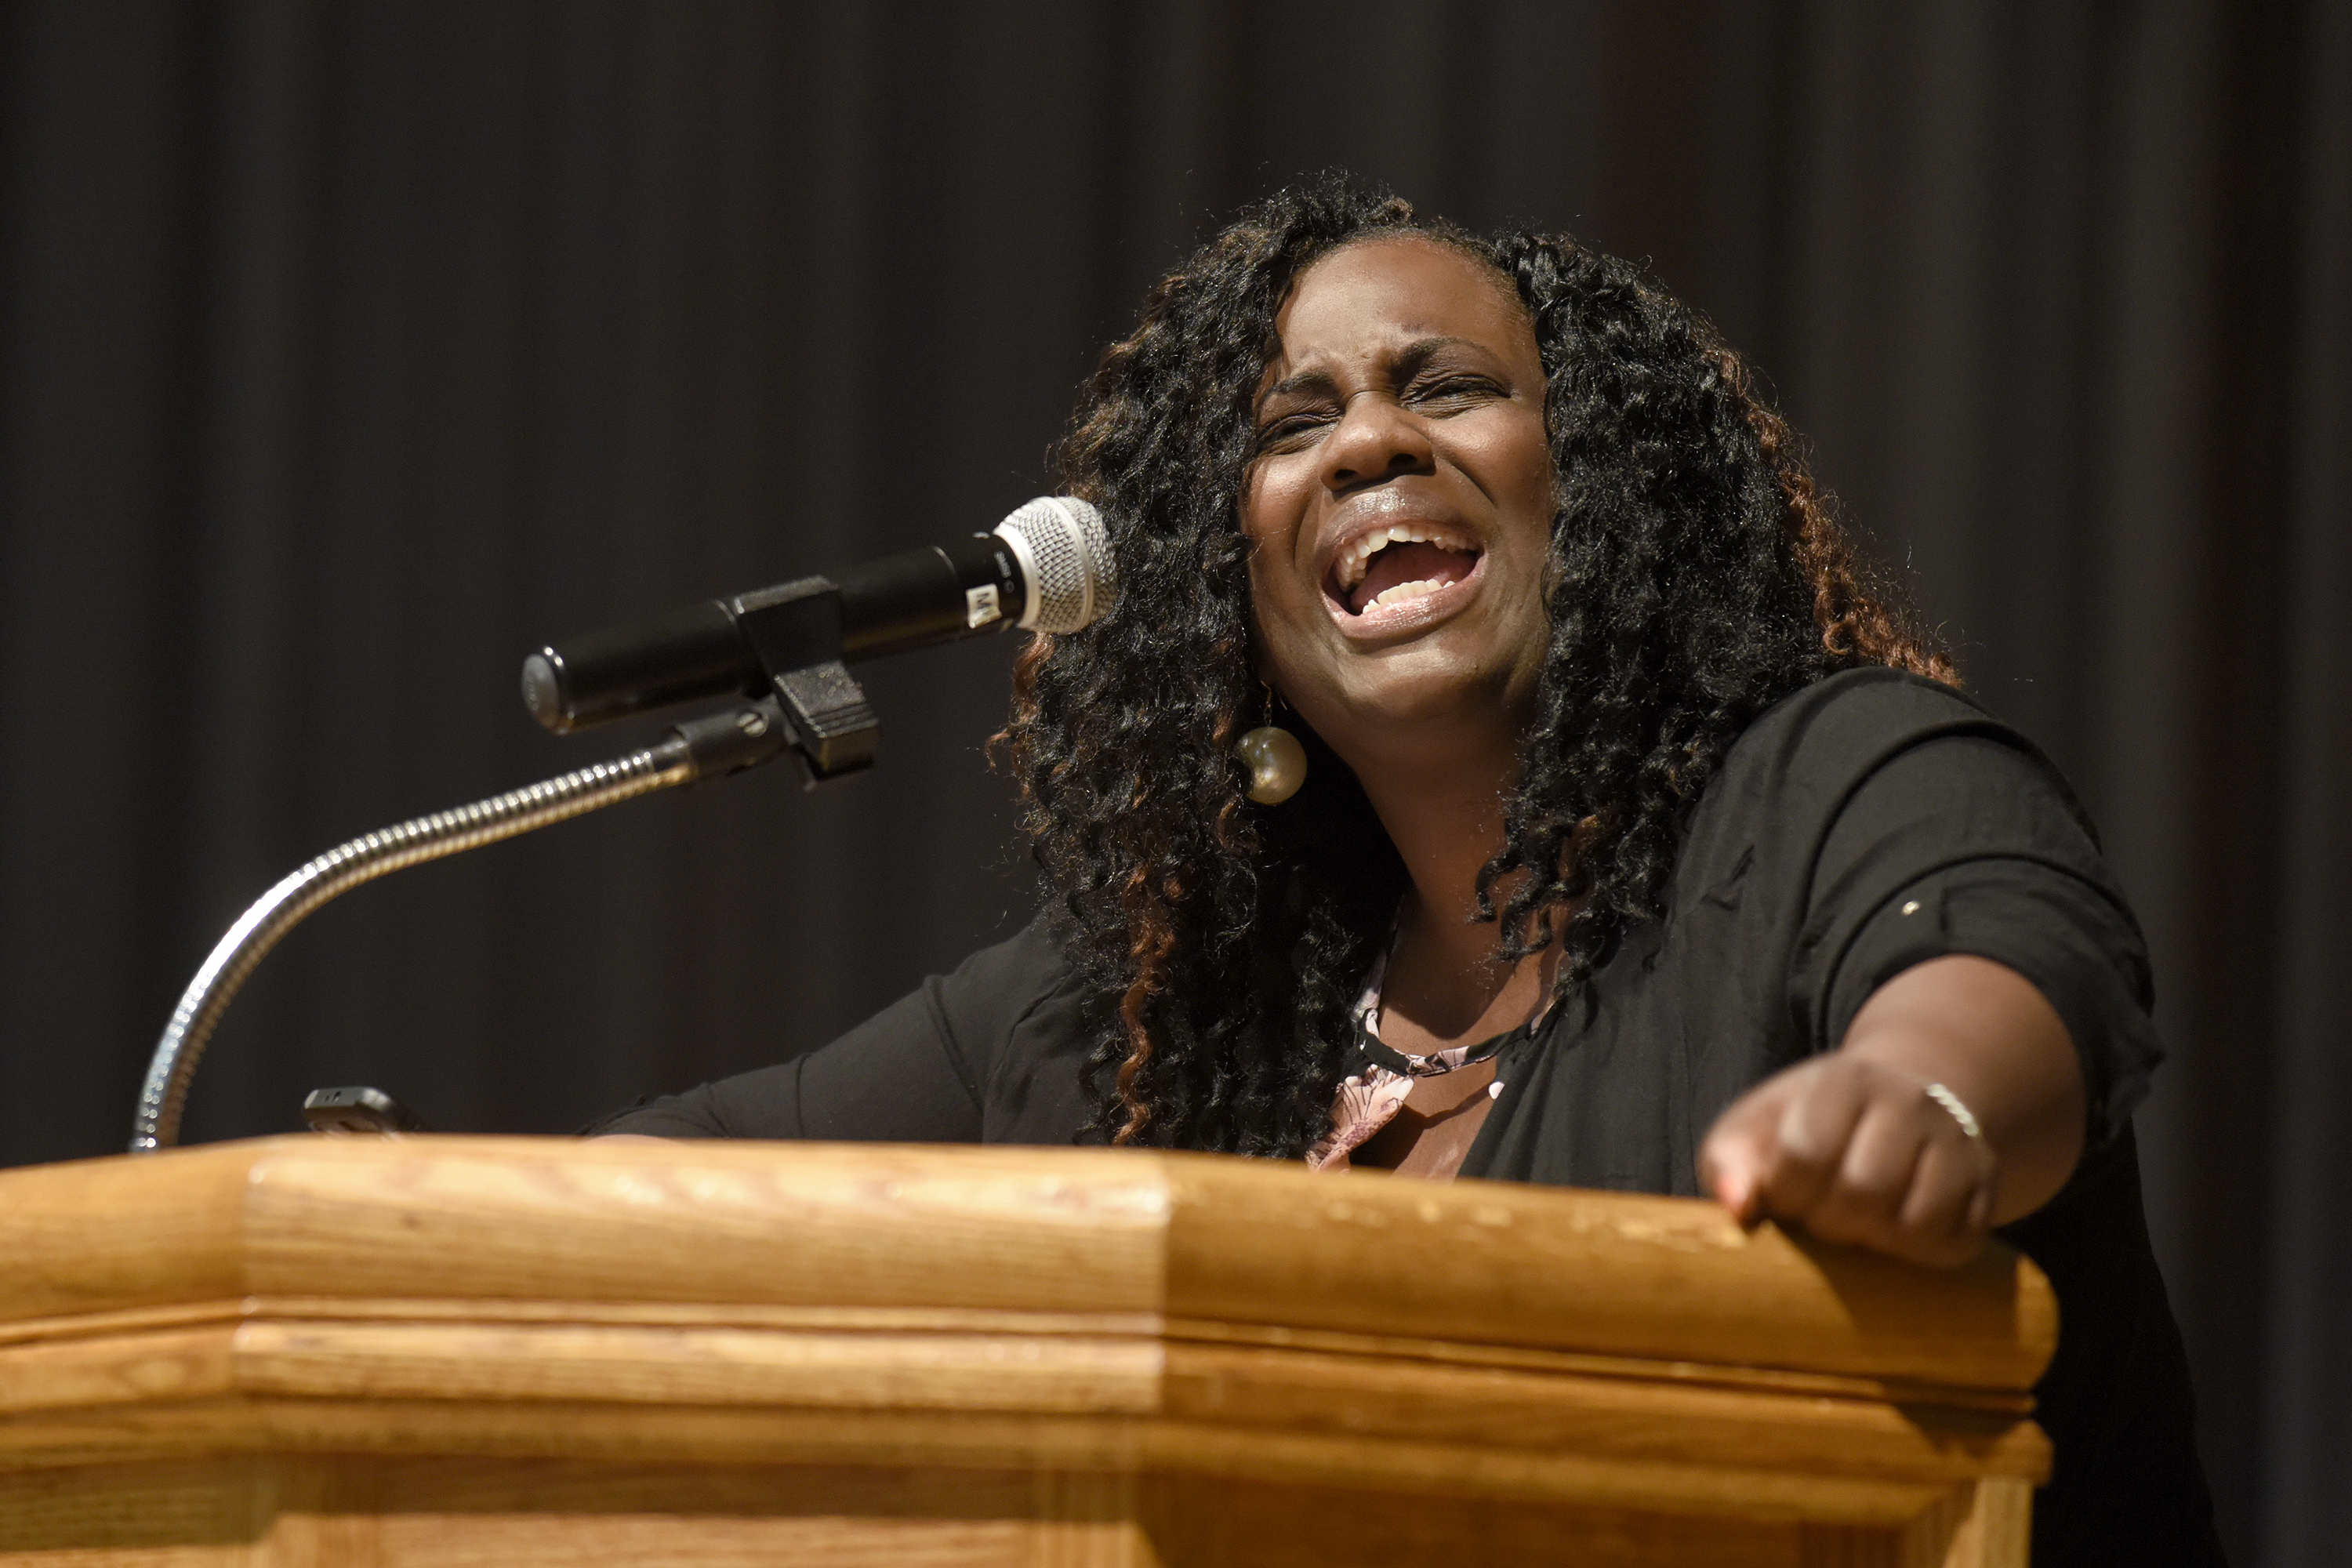 Stephanie Ingram shares her testimony about her son's death from gun violence during the worship service Thursday night during the Central District Conference, Thursday, June 22, 2017, at Bluffton University, Bluffton, OH.  Photograph by J. Tyler Klassen